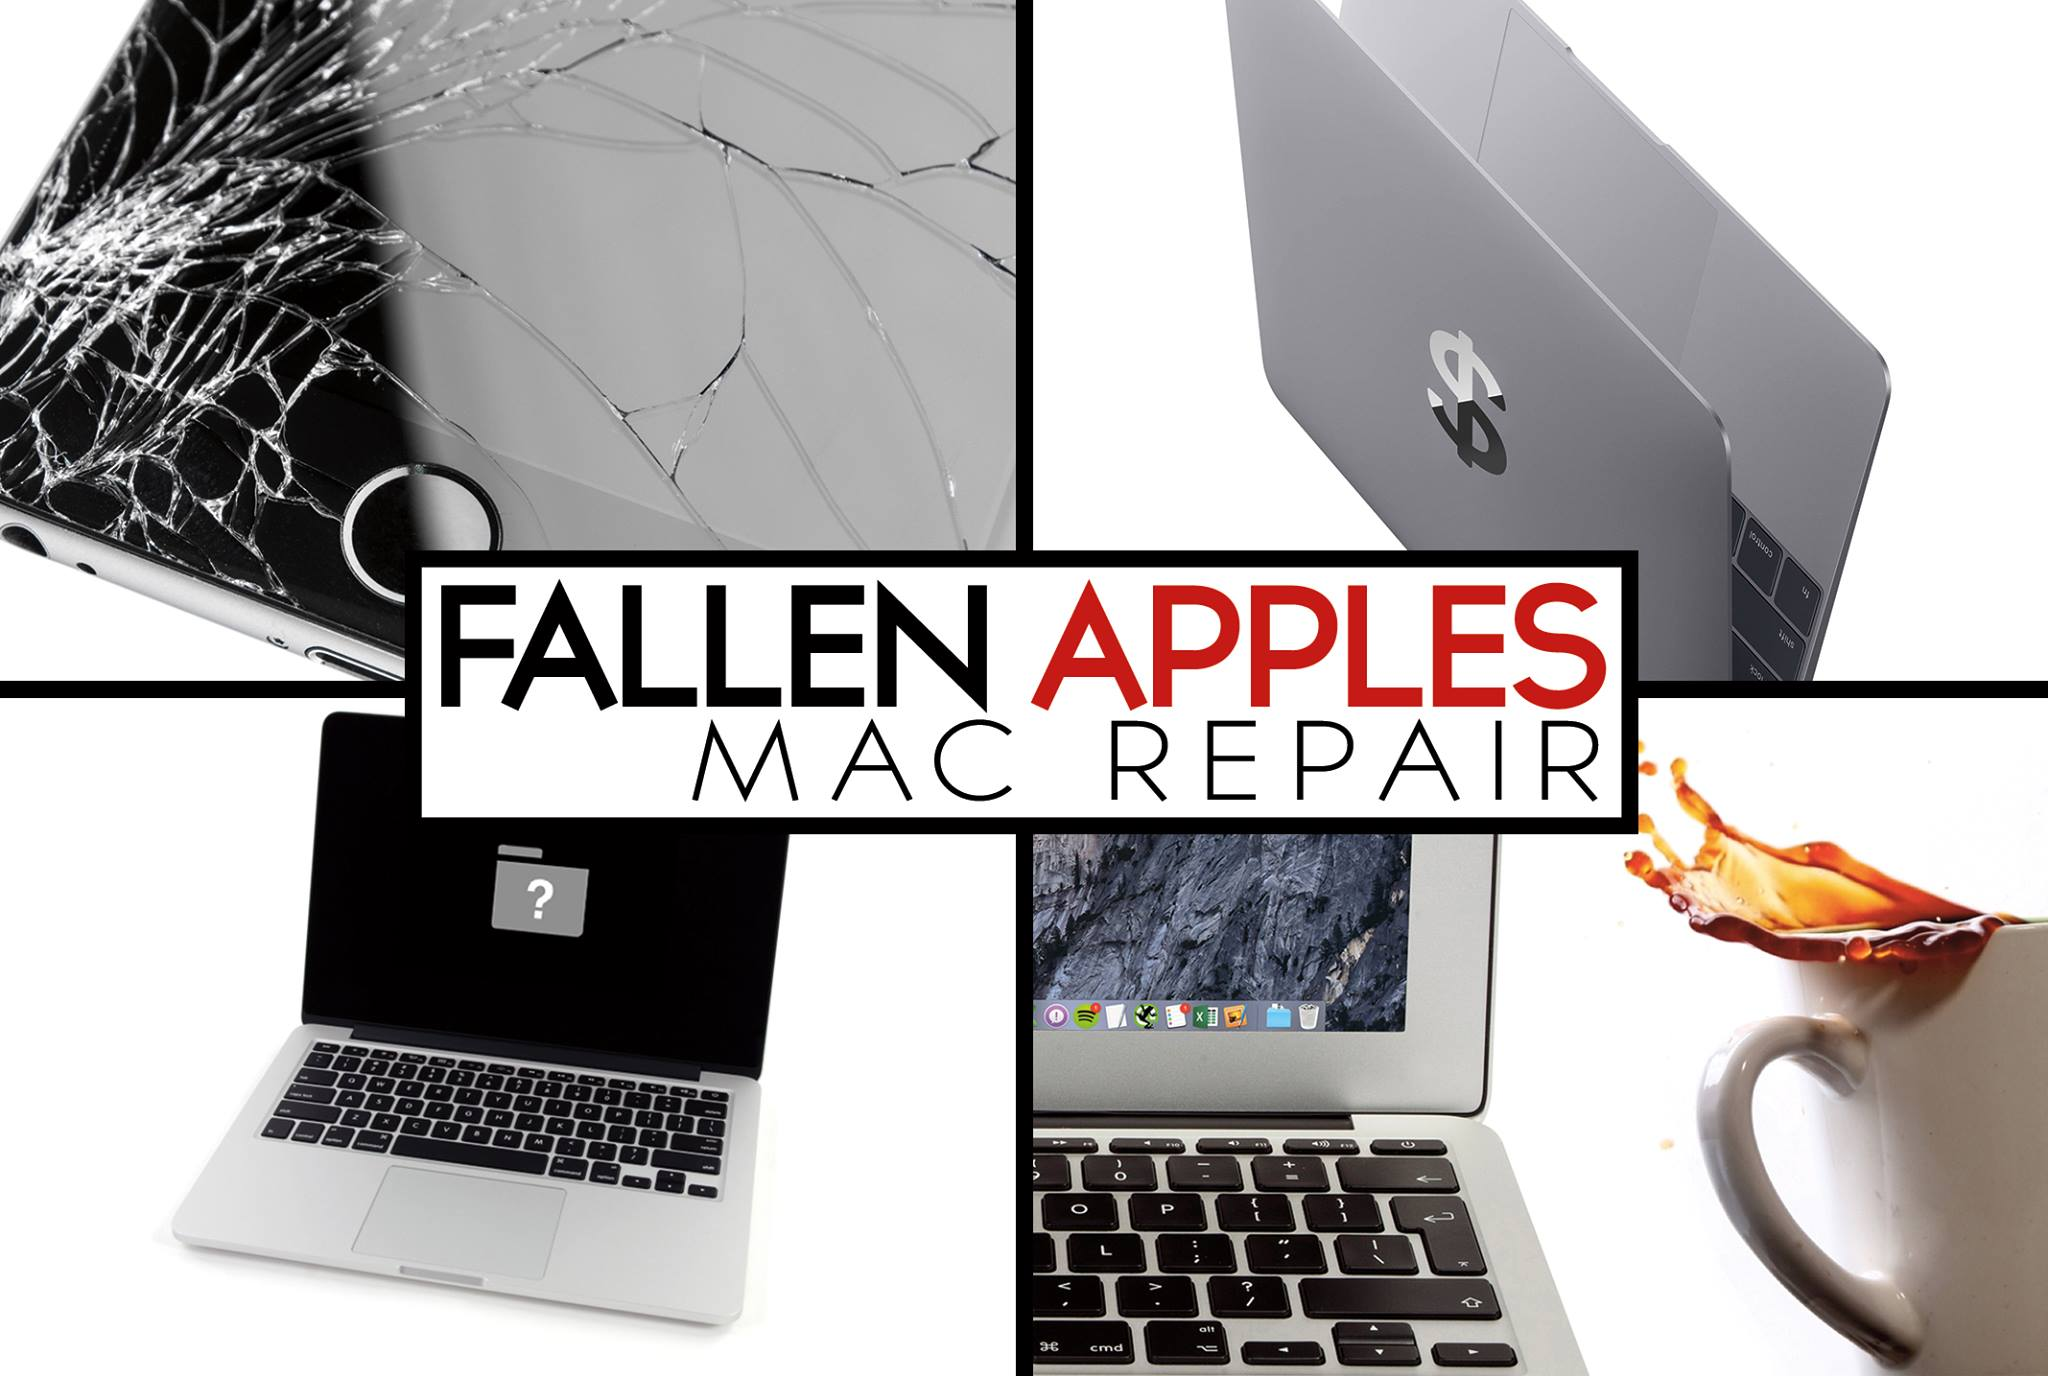 Colorado's Top Rated Local® Computer IT Services Award Winner: Fallen Apples Mac Repair